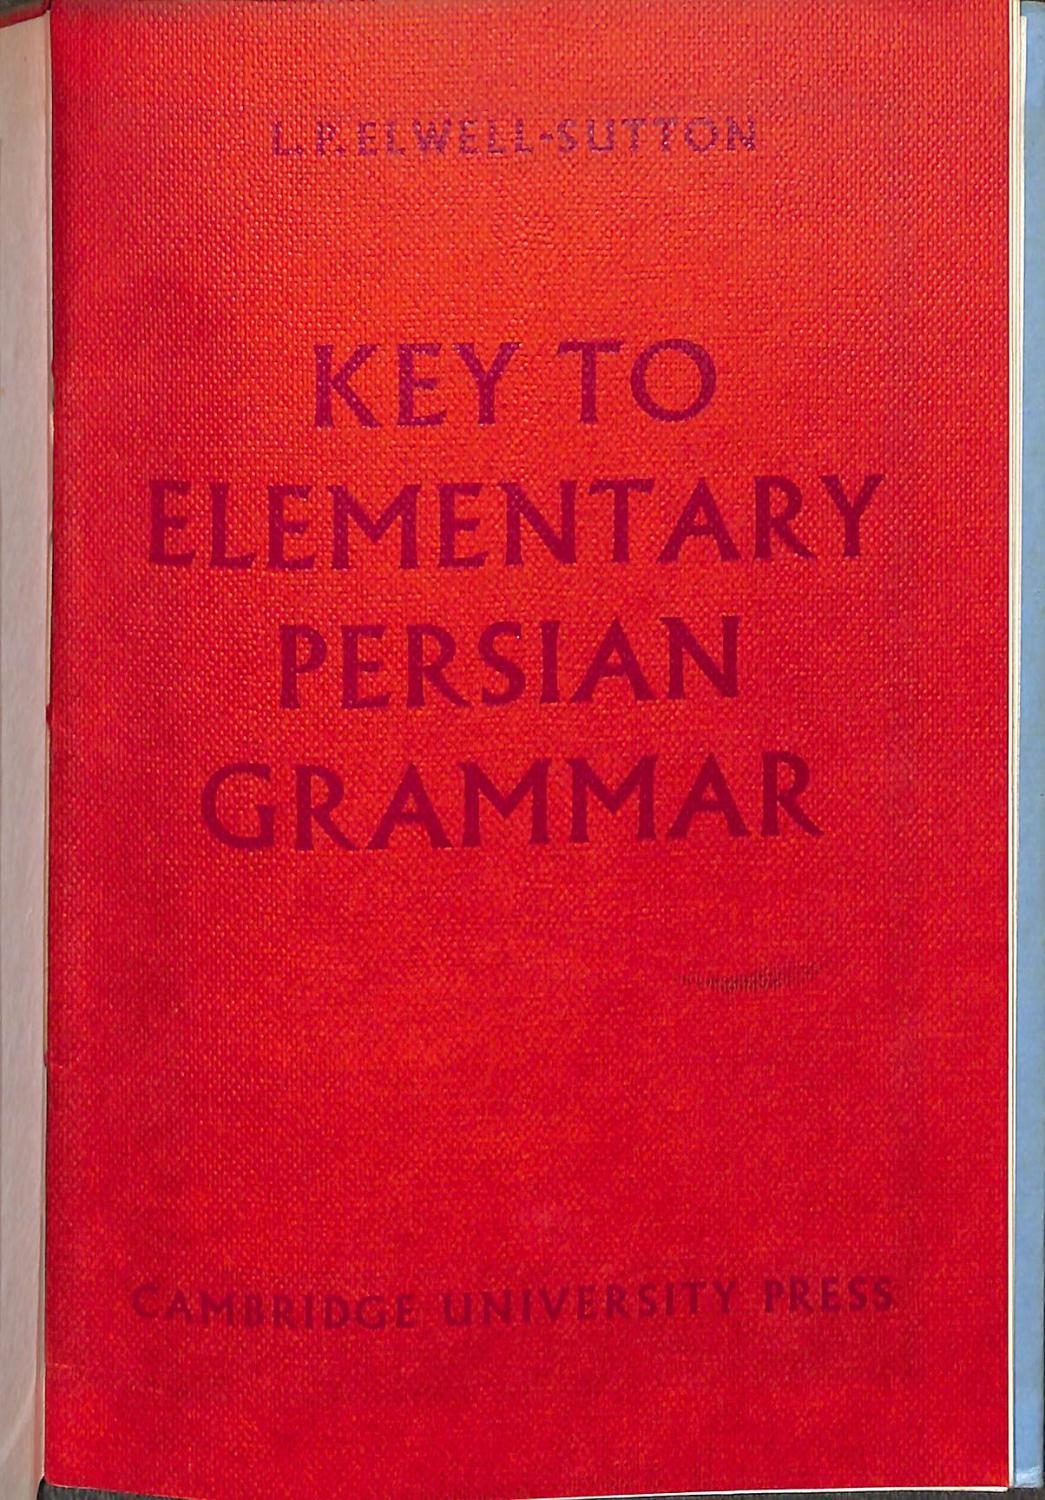 Key to elementary Persian grammar by Laurence Paul Elwell Sutton ...